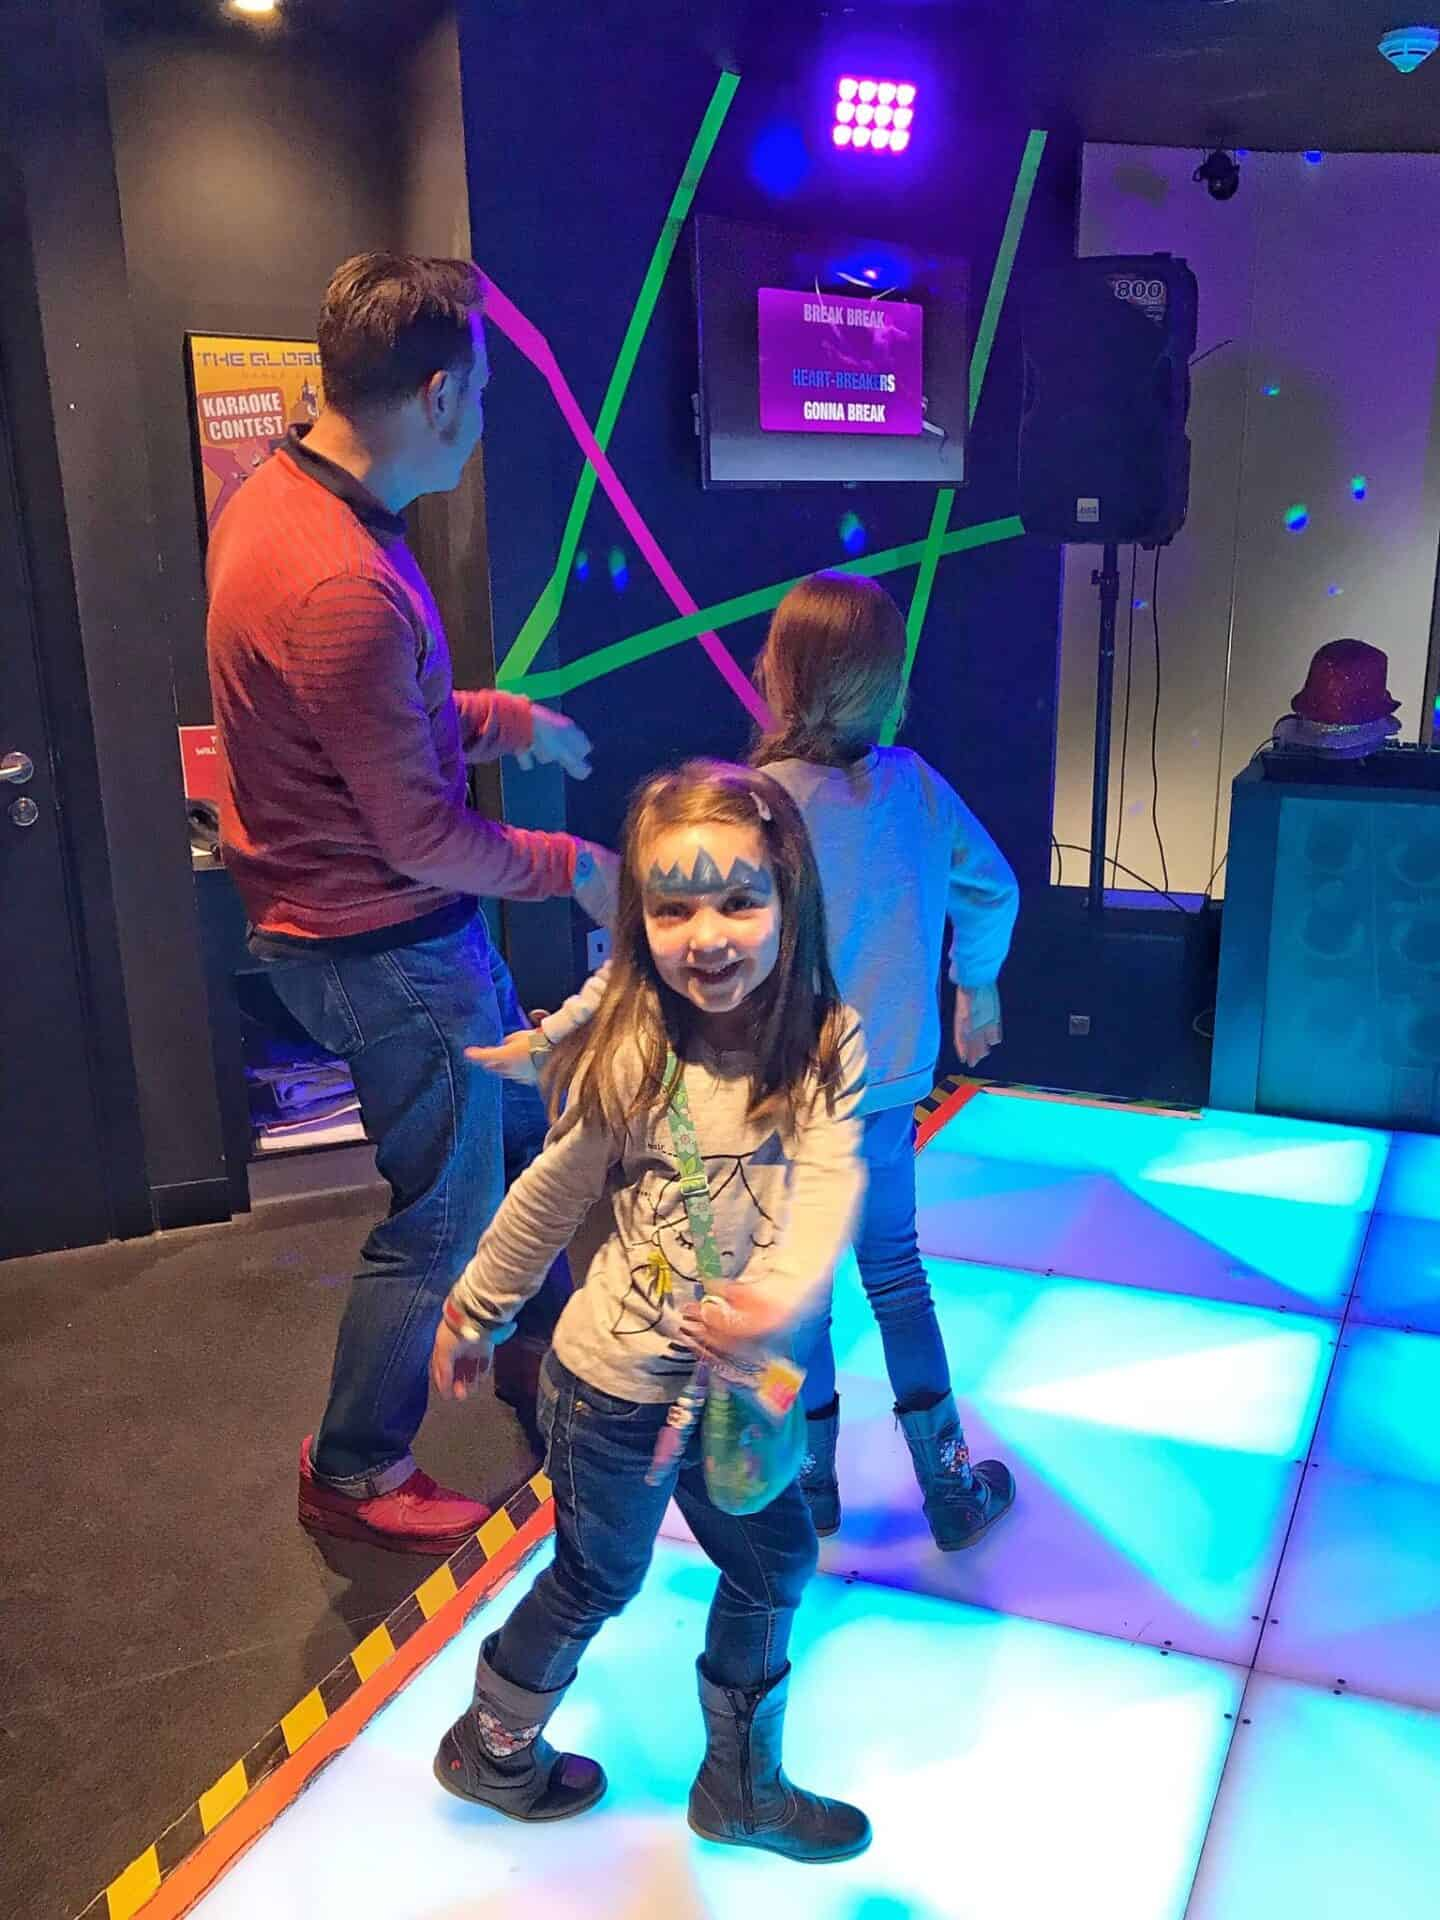 Dancing at the dance club at Kidzania